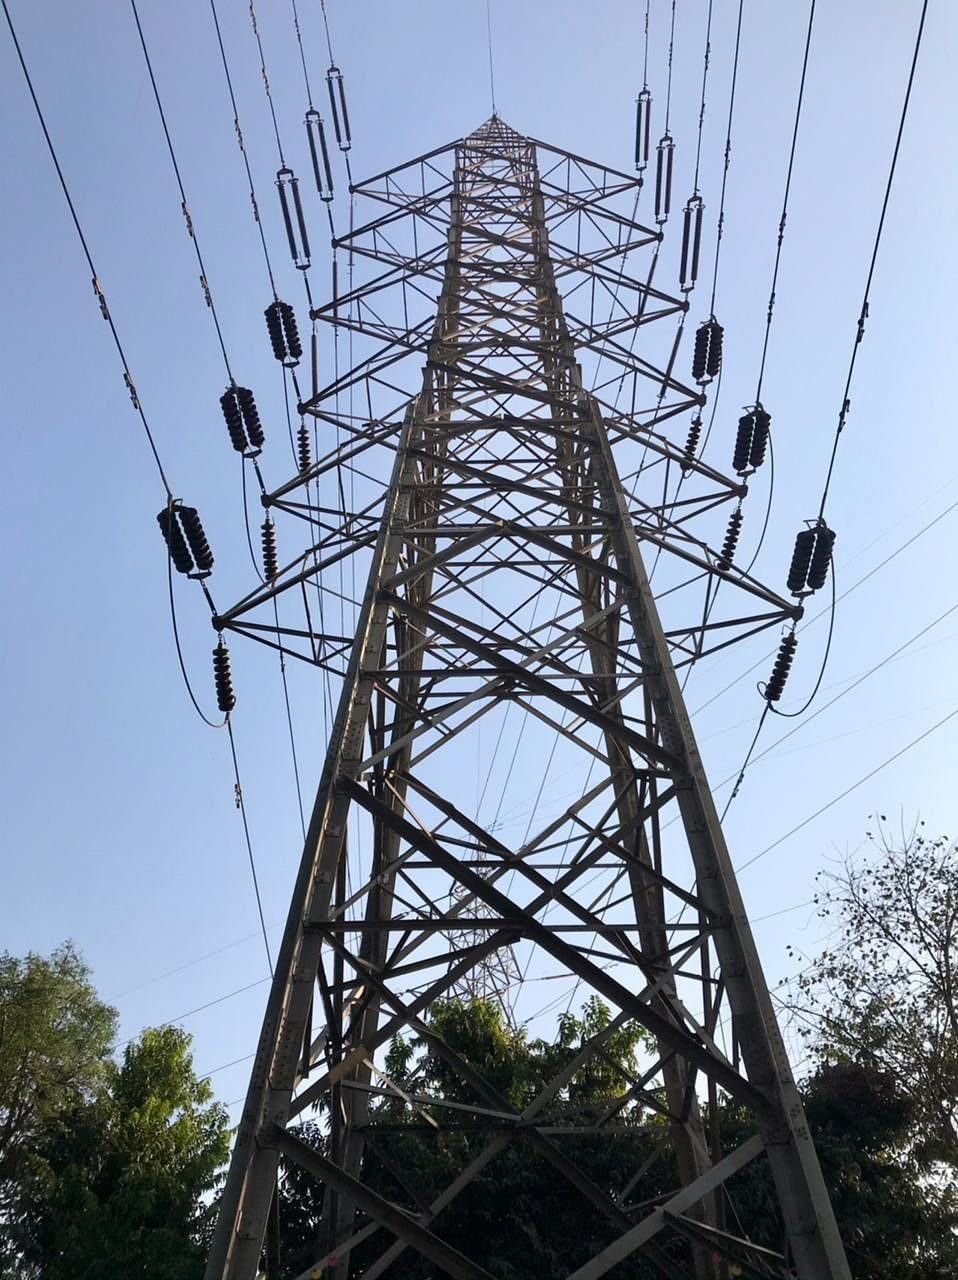 Power Demand Recovering, But Supply Additions Strong, Led By Renewables: Motilal Oswal